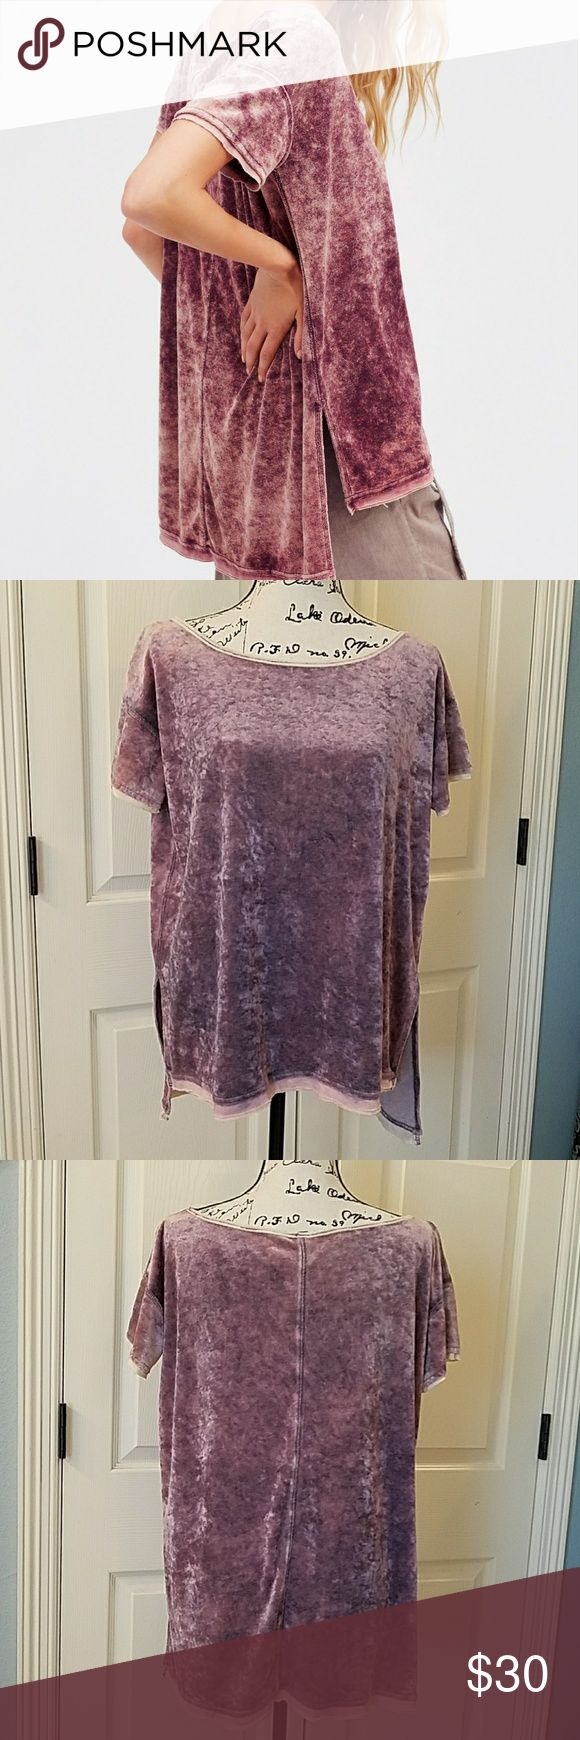 Free People Doran Tee EUC Super cute washed velvet tee in perple.  Longer in back than front.  Bateau neckline.  Super soft.  Only worn once.  A little big on me.  I have replaced with xs.   Like new.  No flaws. Free People Tops Tees - Short Sleeve